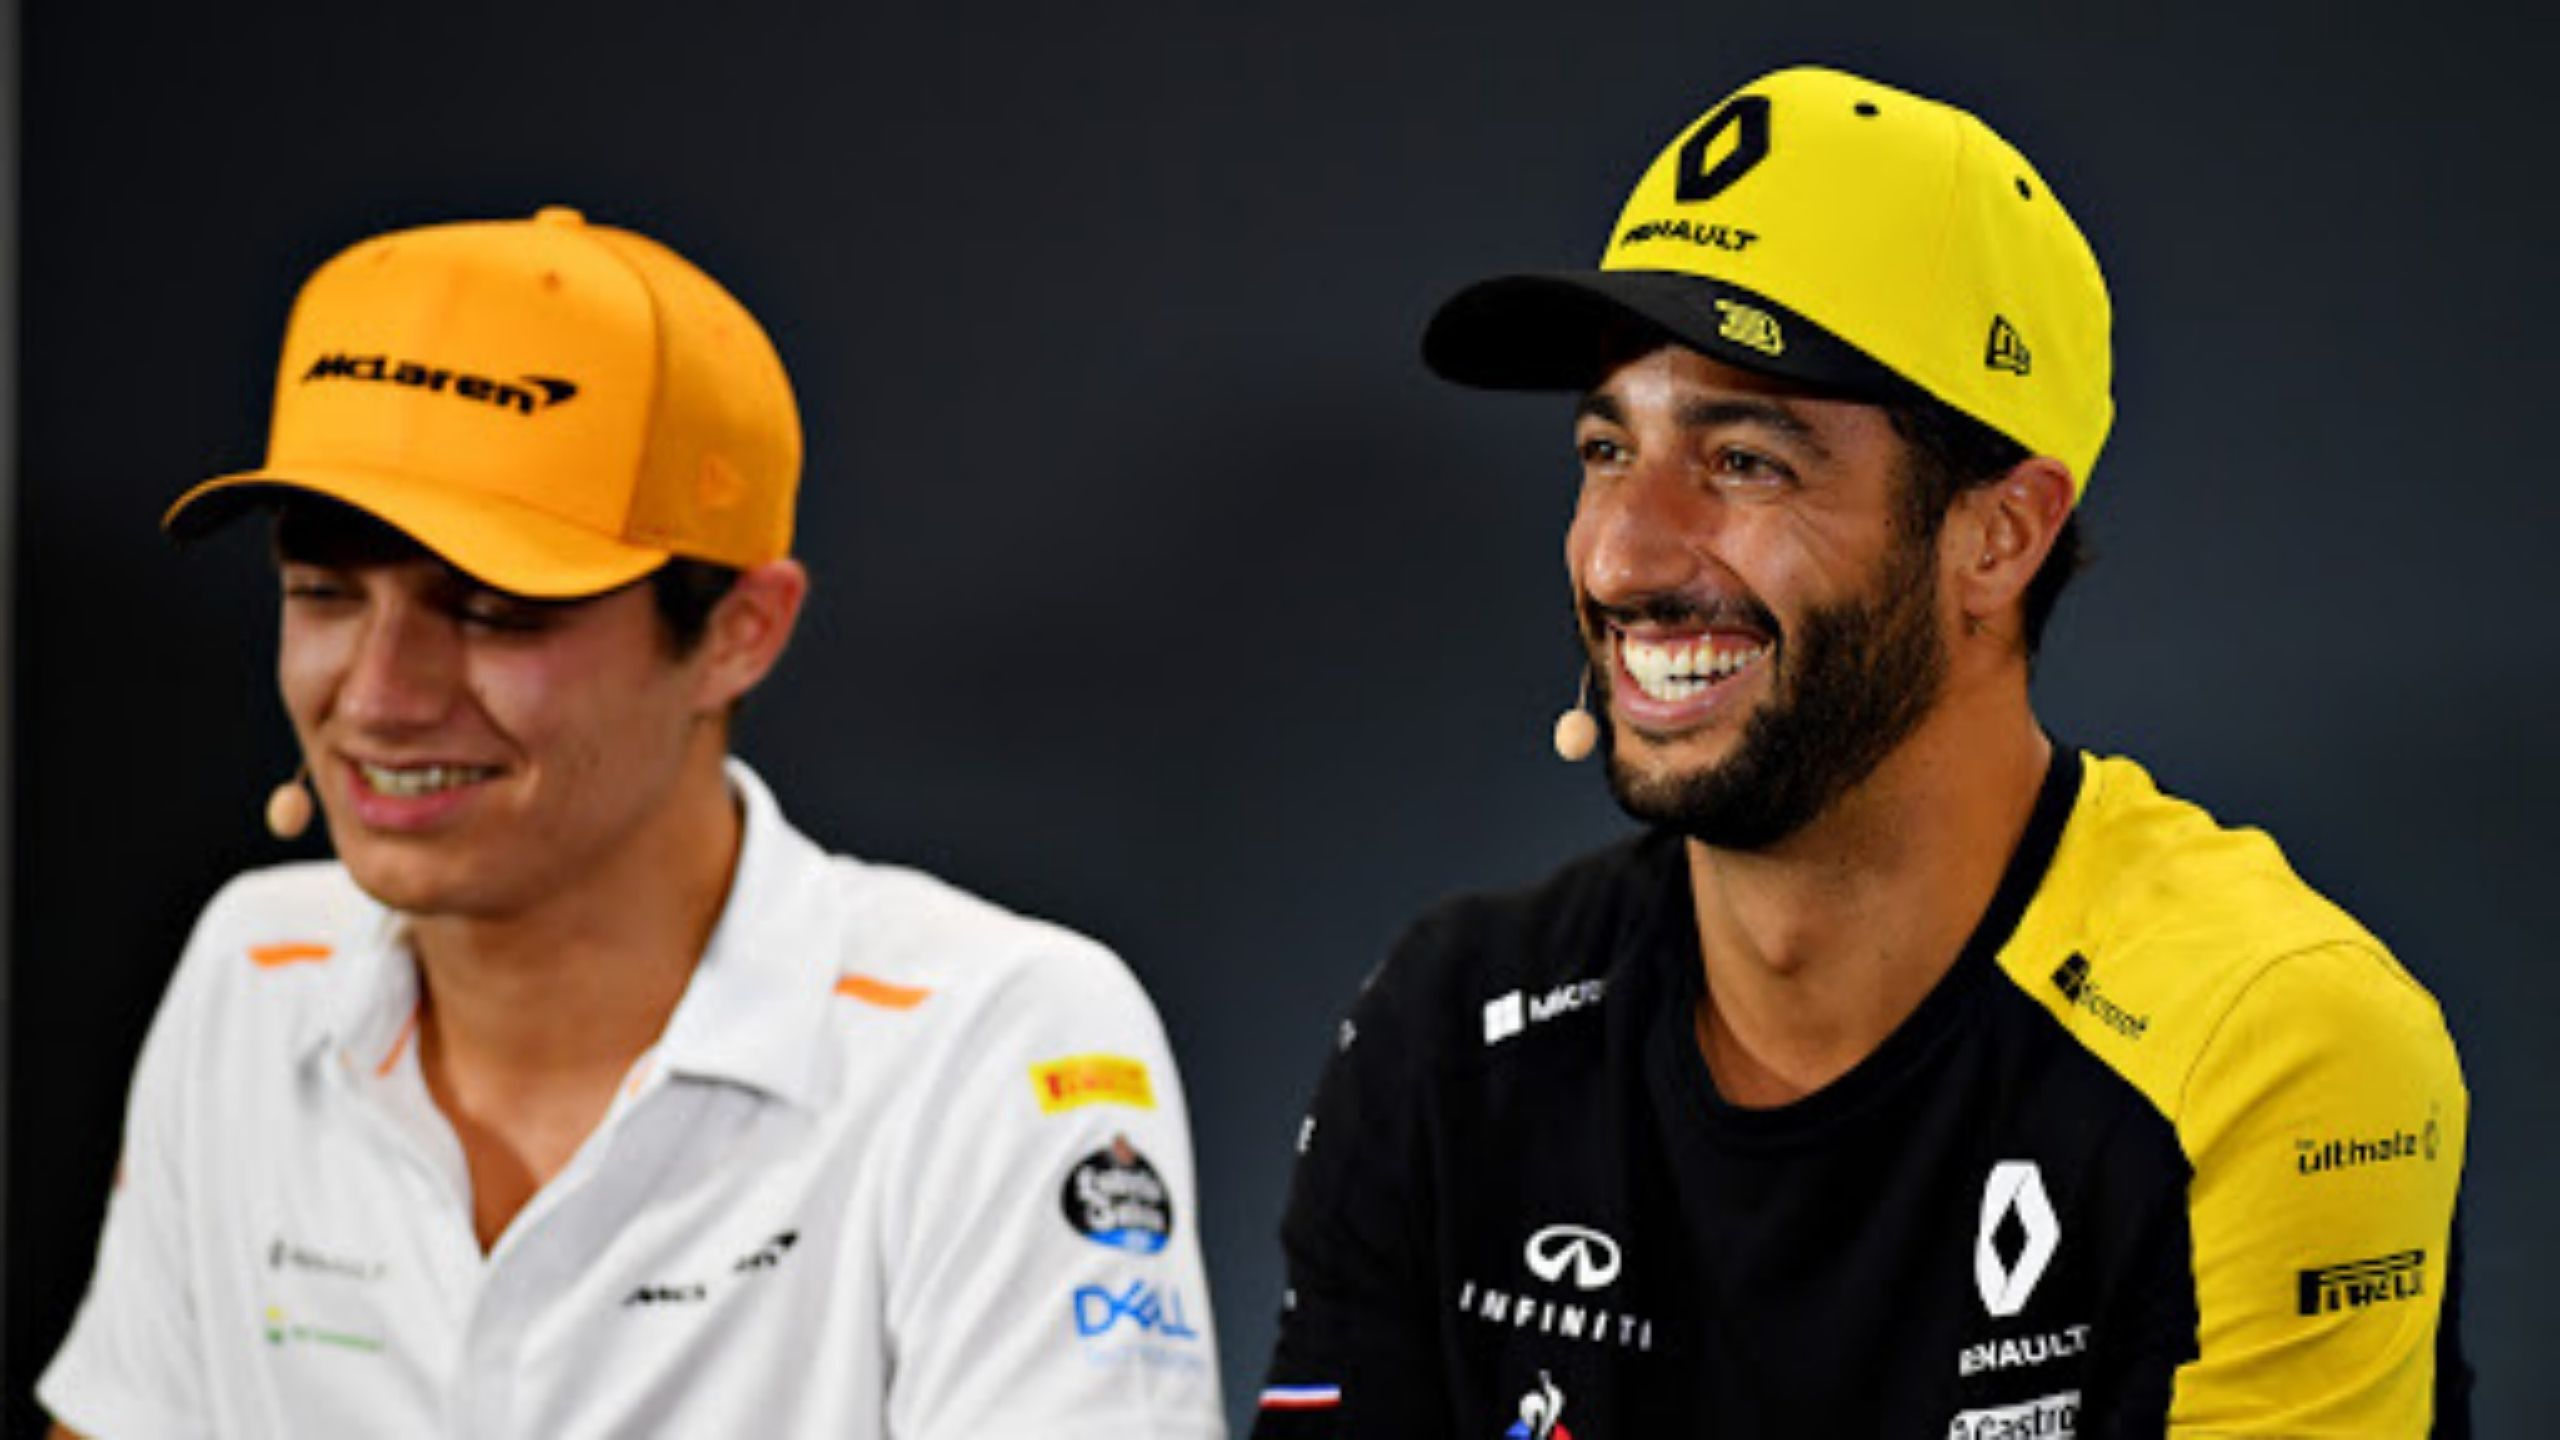 """I'm going there for business"" - Daniel Ricciardo shots down suggestions of a ""meme power couple"" with McLaren teammate Lando Norris"